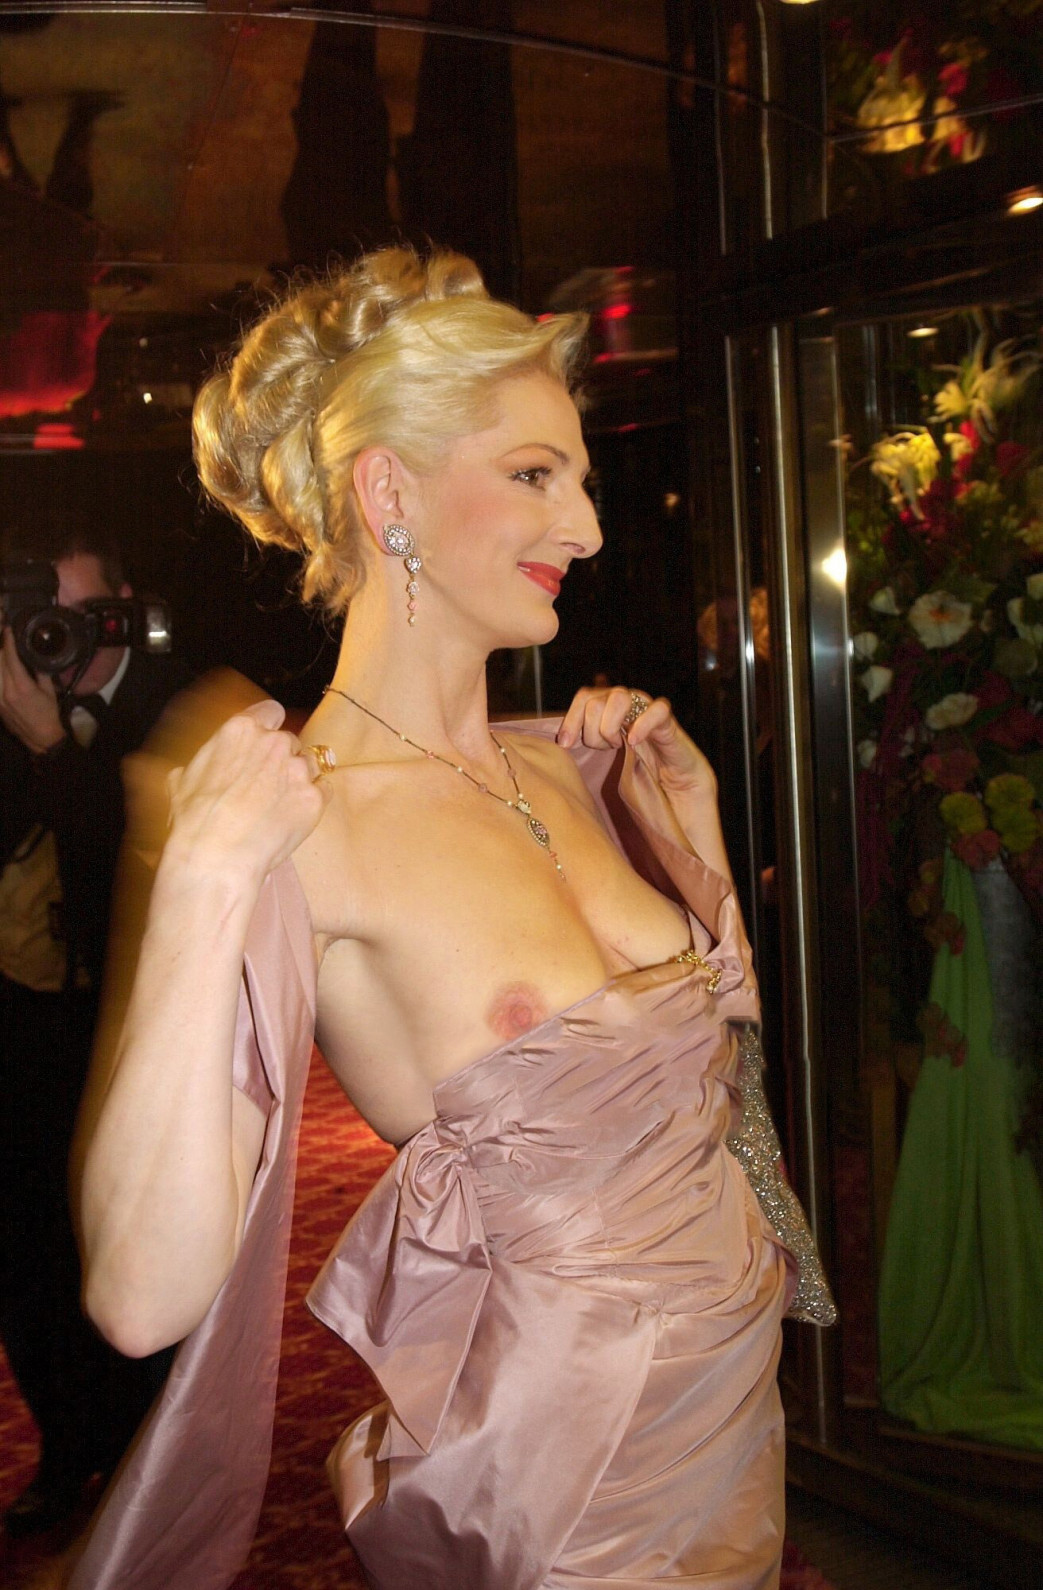 Desiree-Nick-Boob-Slip-at-unesco-benefiz-gala-2001-2.jpg